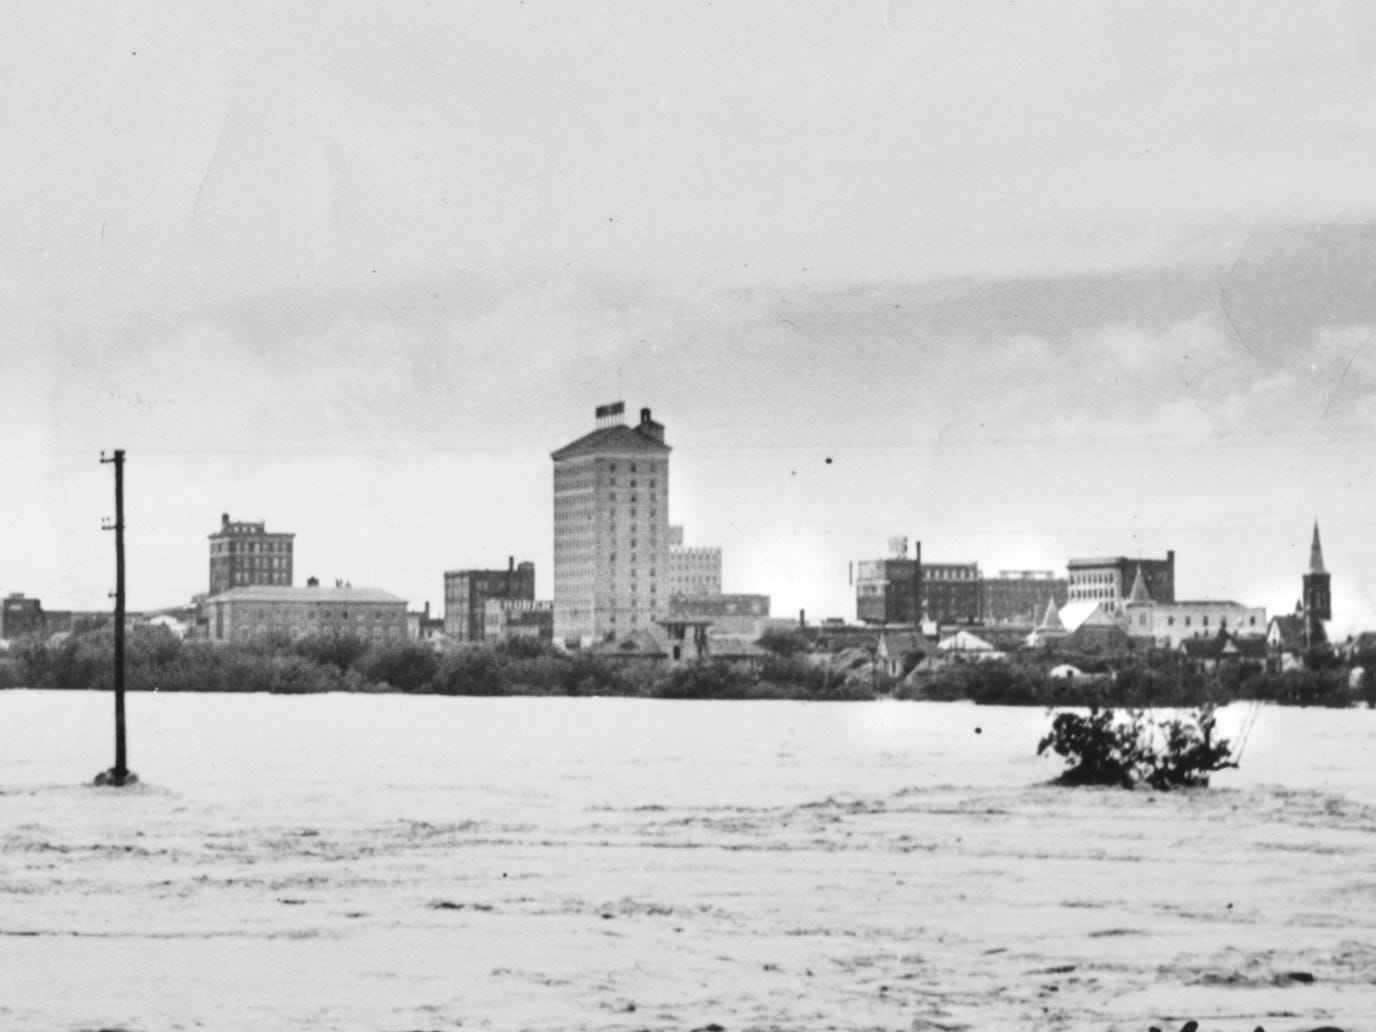 San Angelo surrounded by flood waters in 1936.